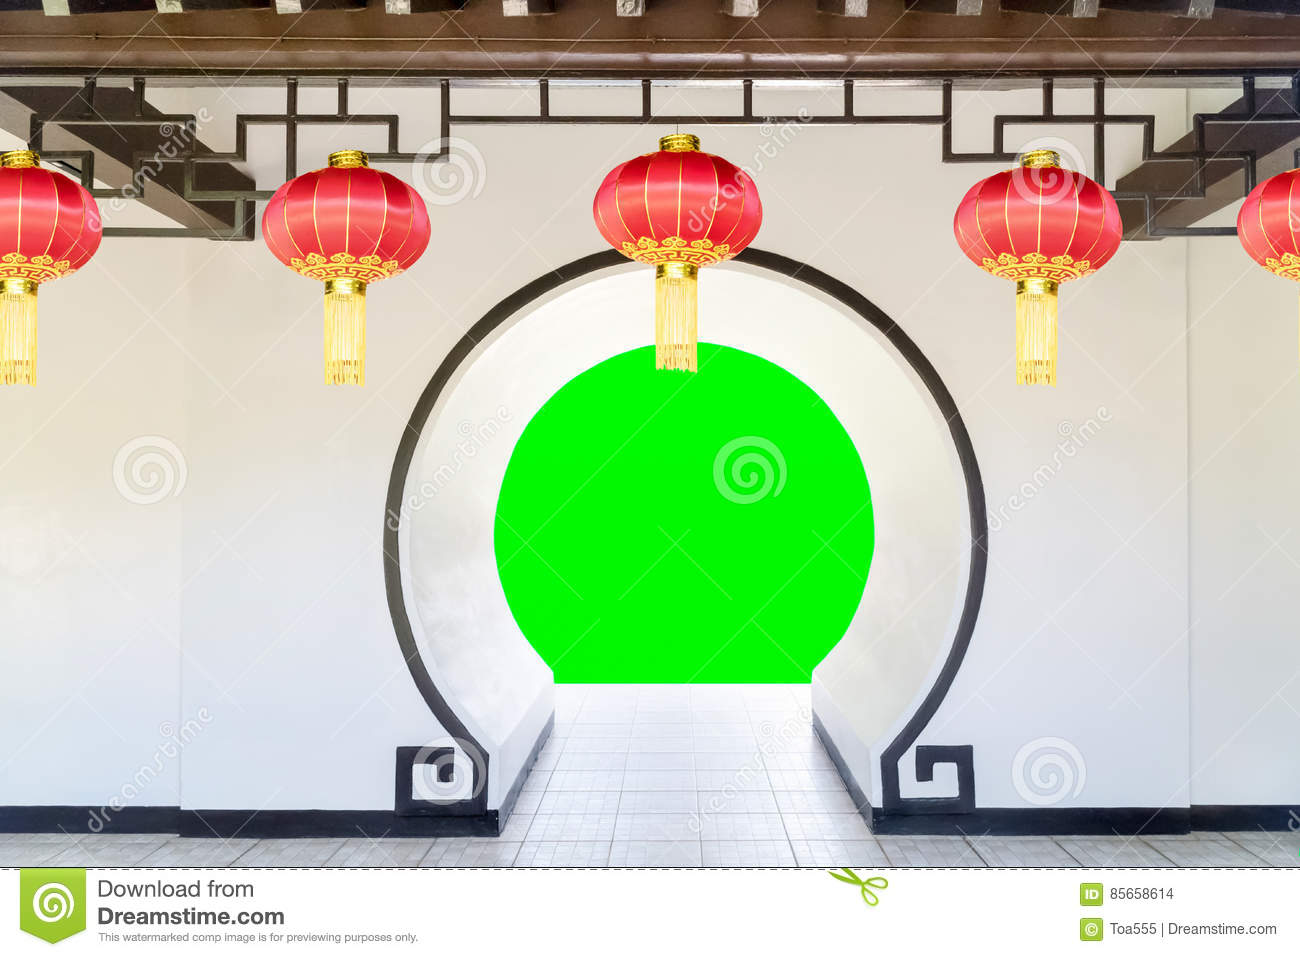 Moon Gate In Chinese Garden Stock Photo.